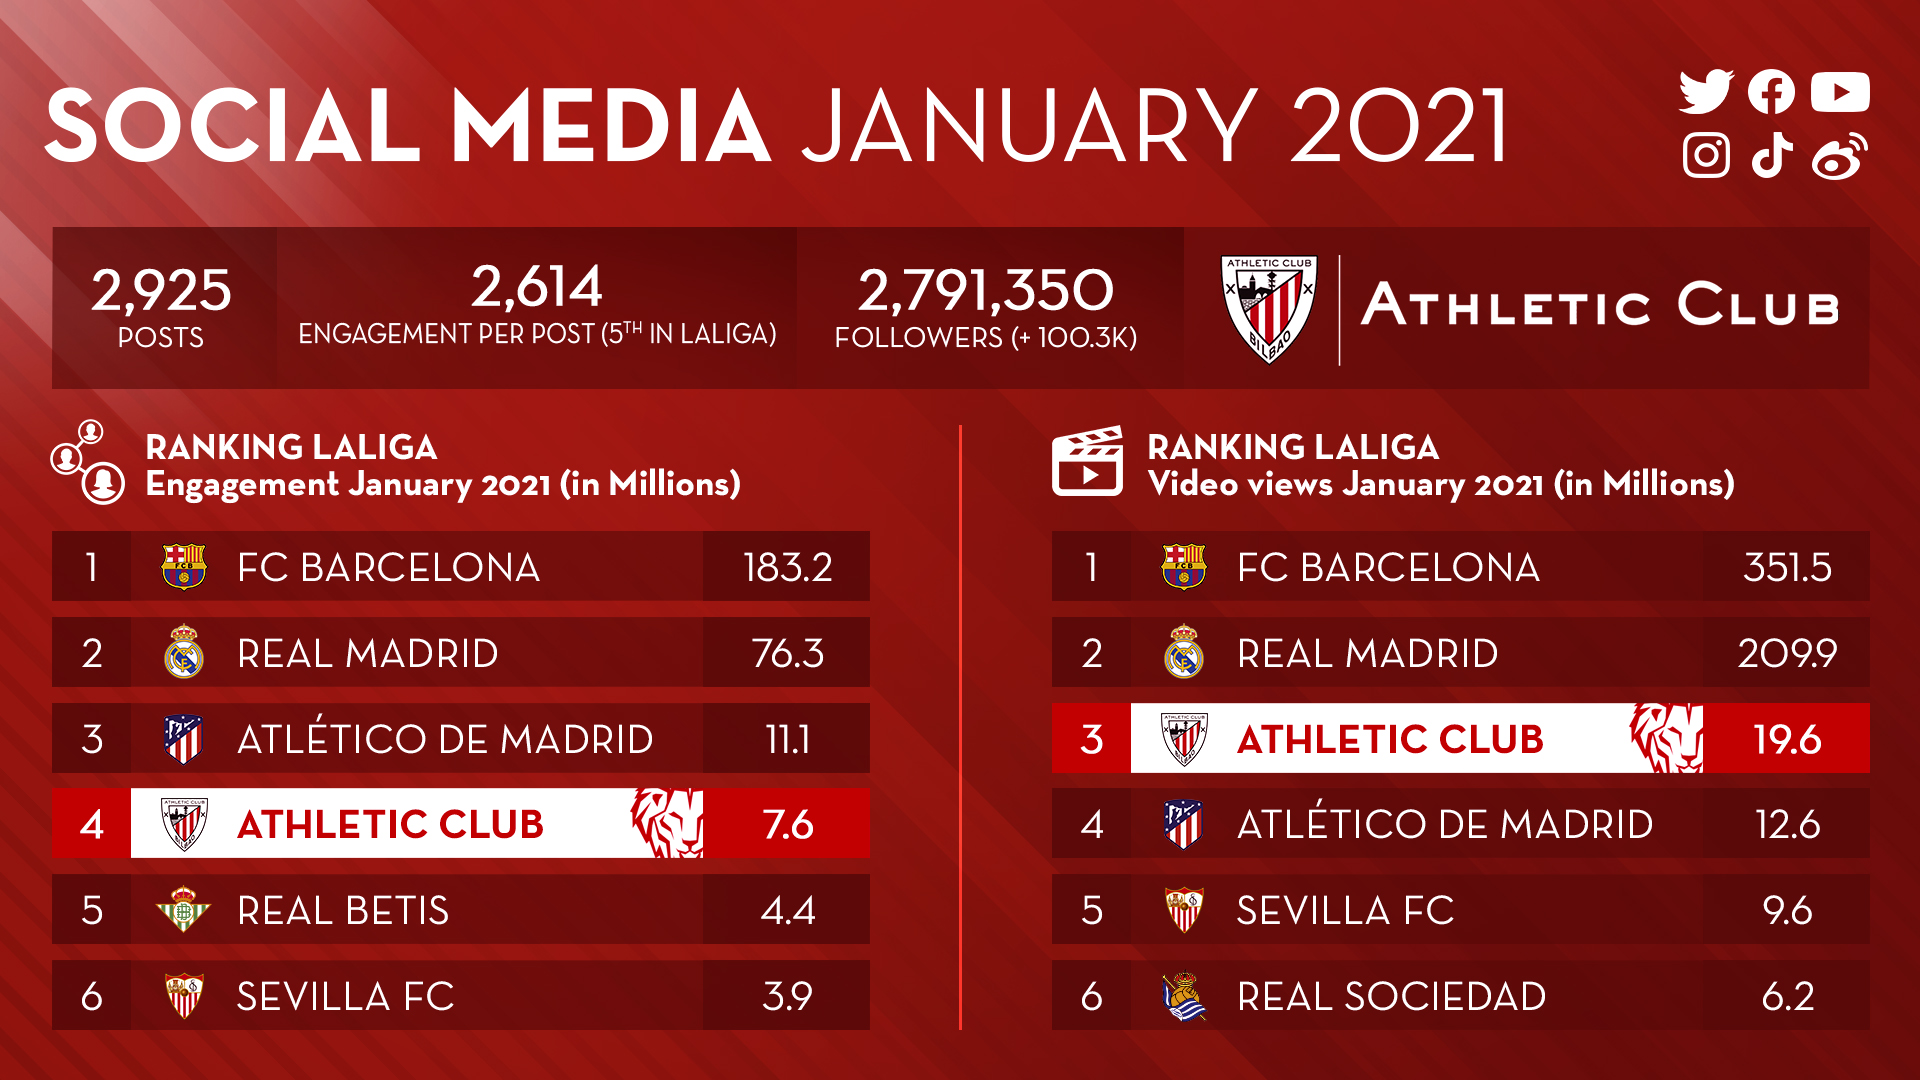 Social media interaction skyrockets with the Supercopa